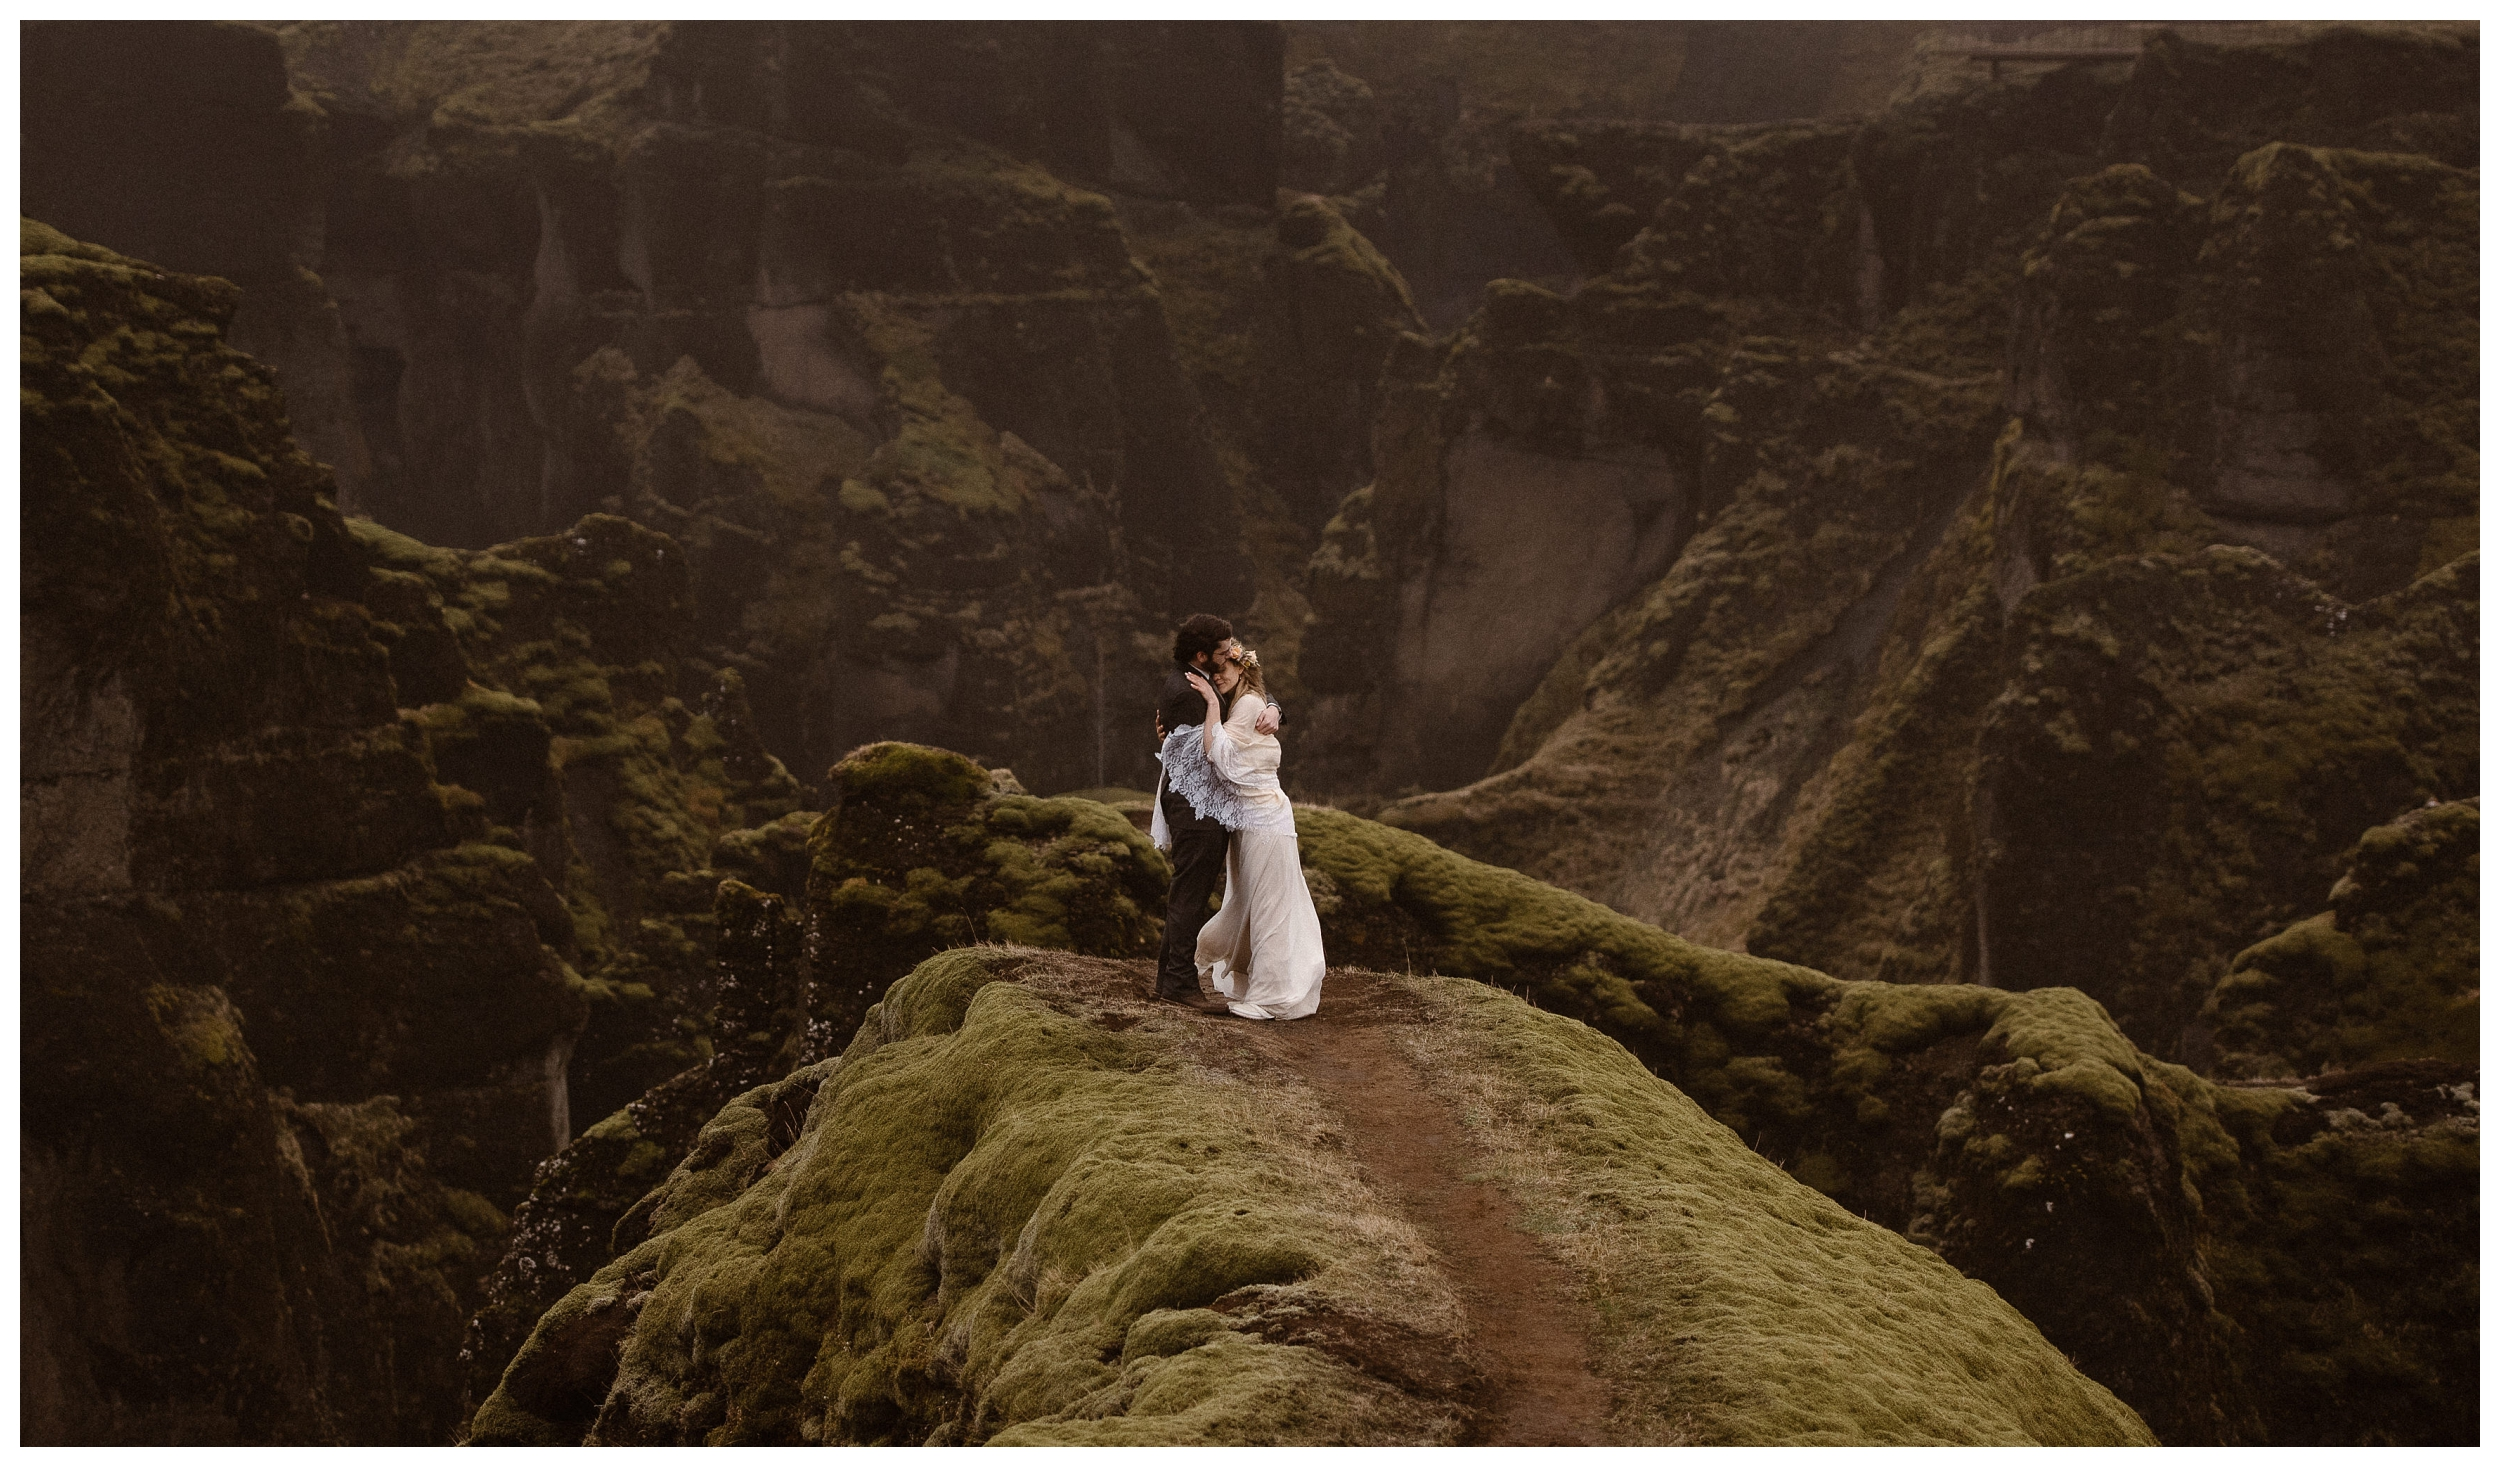 Rangefinder-Top-Wedding-Photographers-Adventure-Instead-Maddie-Mae-Destination-Elopement-Photography-Eloping-Photographers_0025.jpg